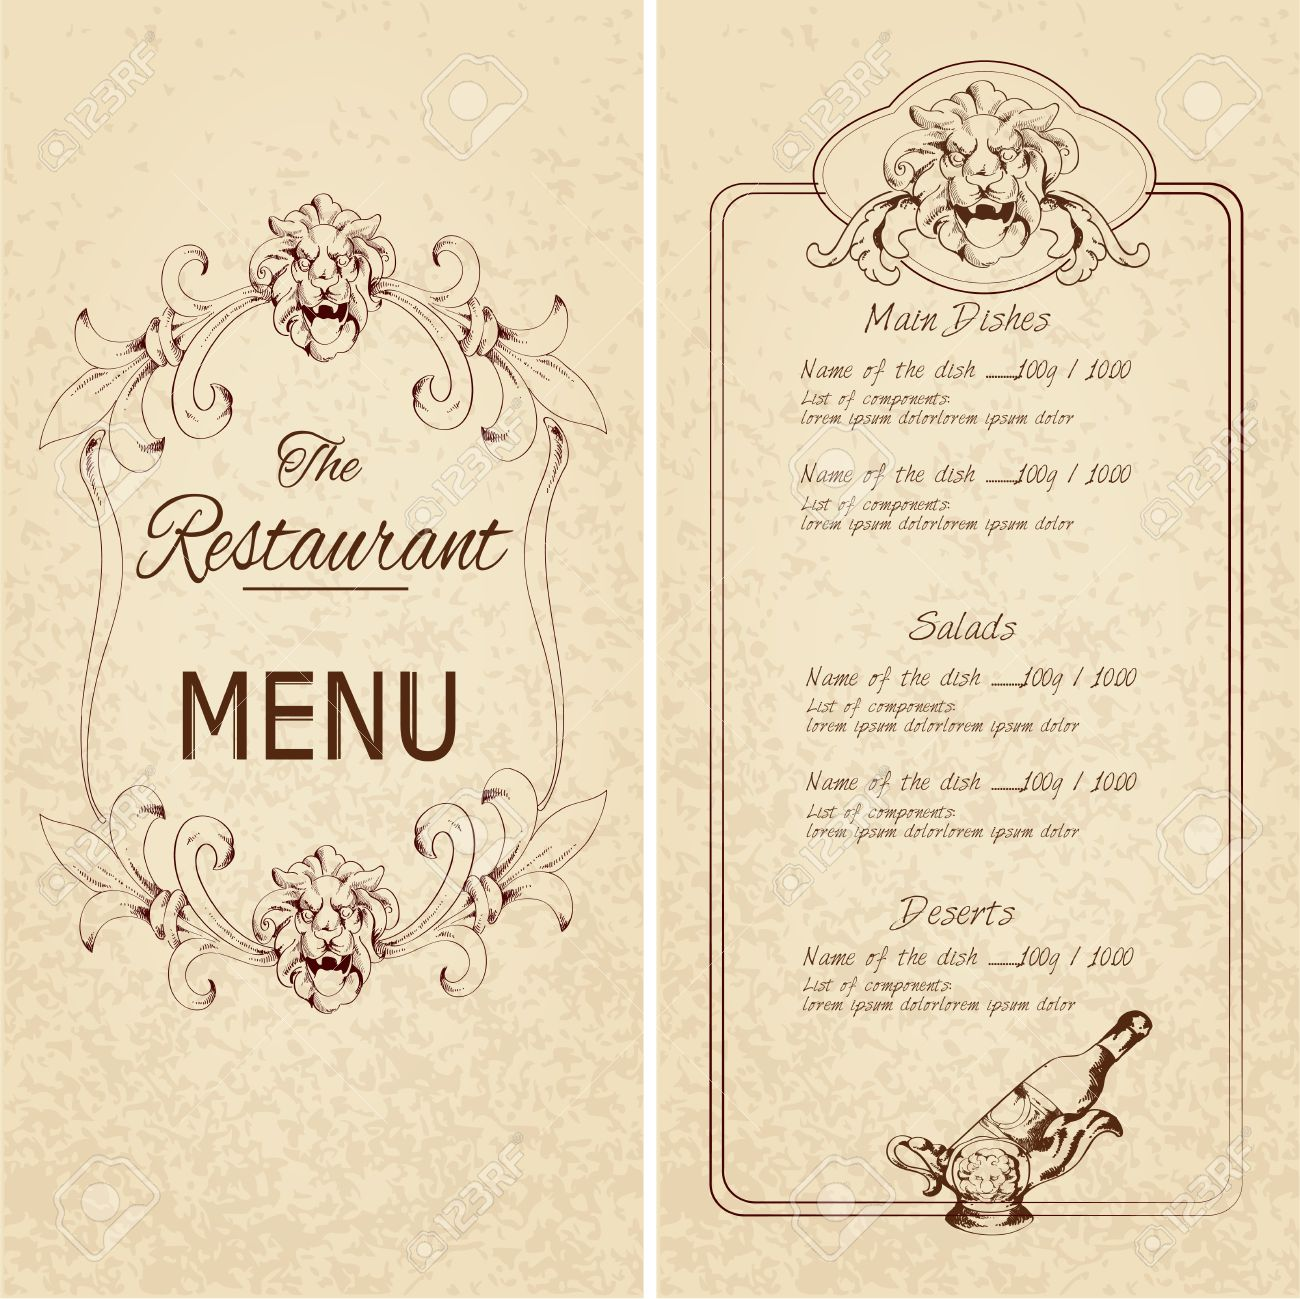 Retro vintage restaurant menu template with lion and wine bottle retro vintage restaurant menu template with lion and wine bottle decoration vector illustration stock vector pronofoot35fo Gallery